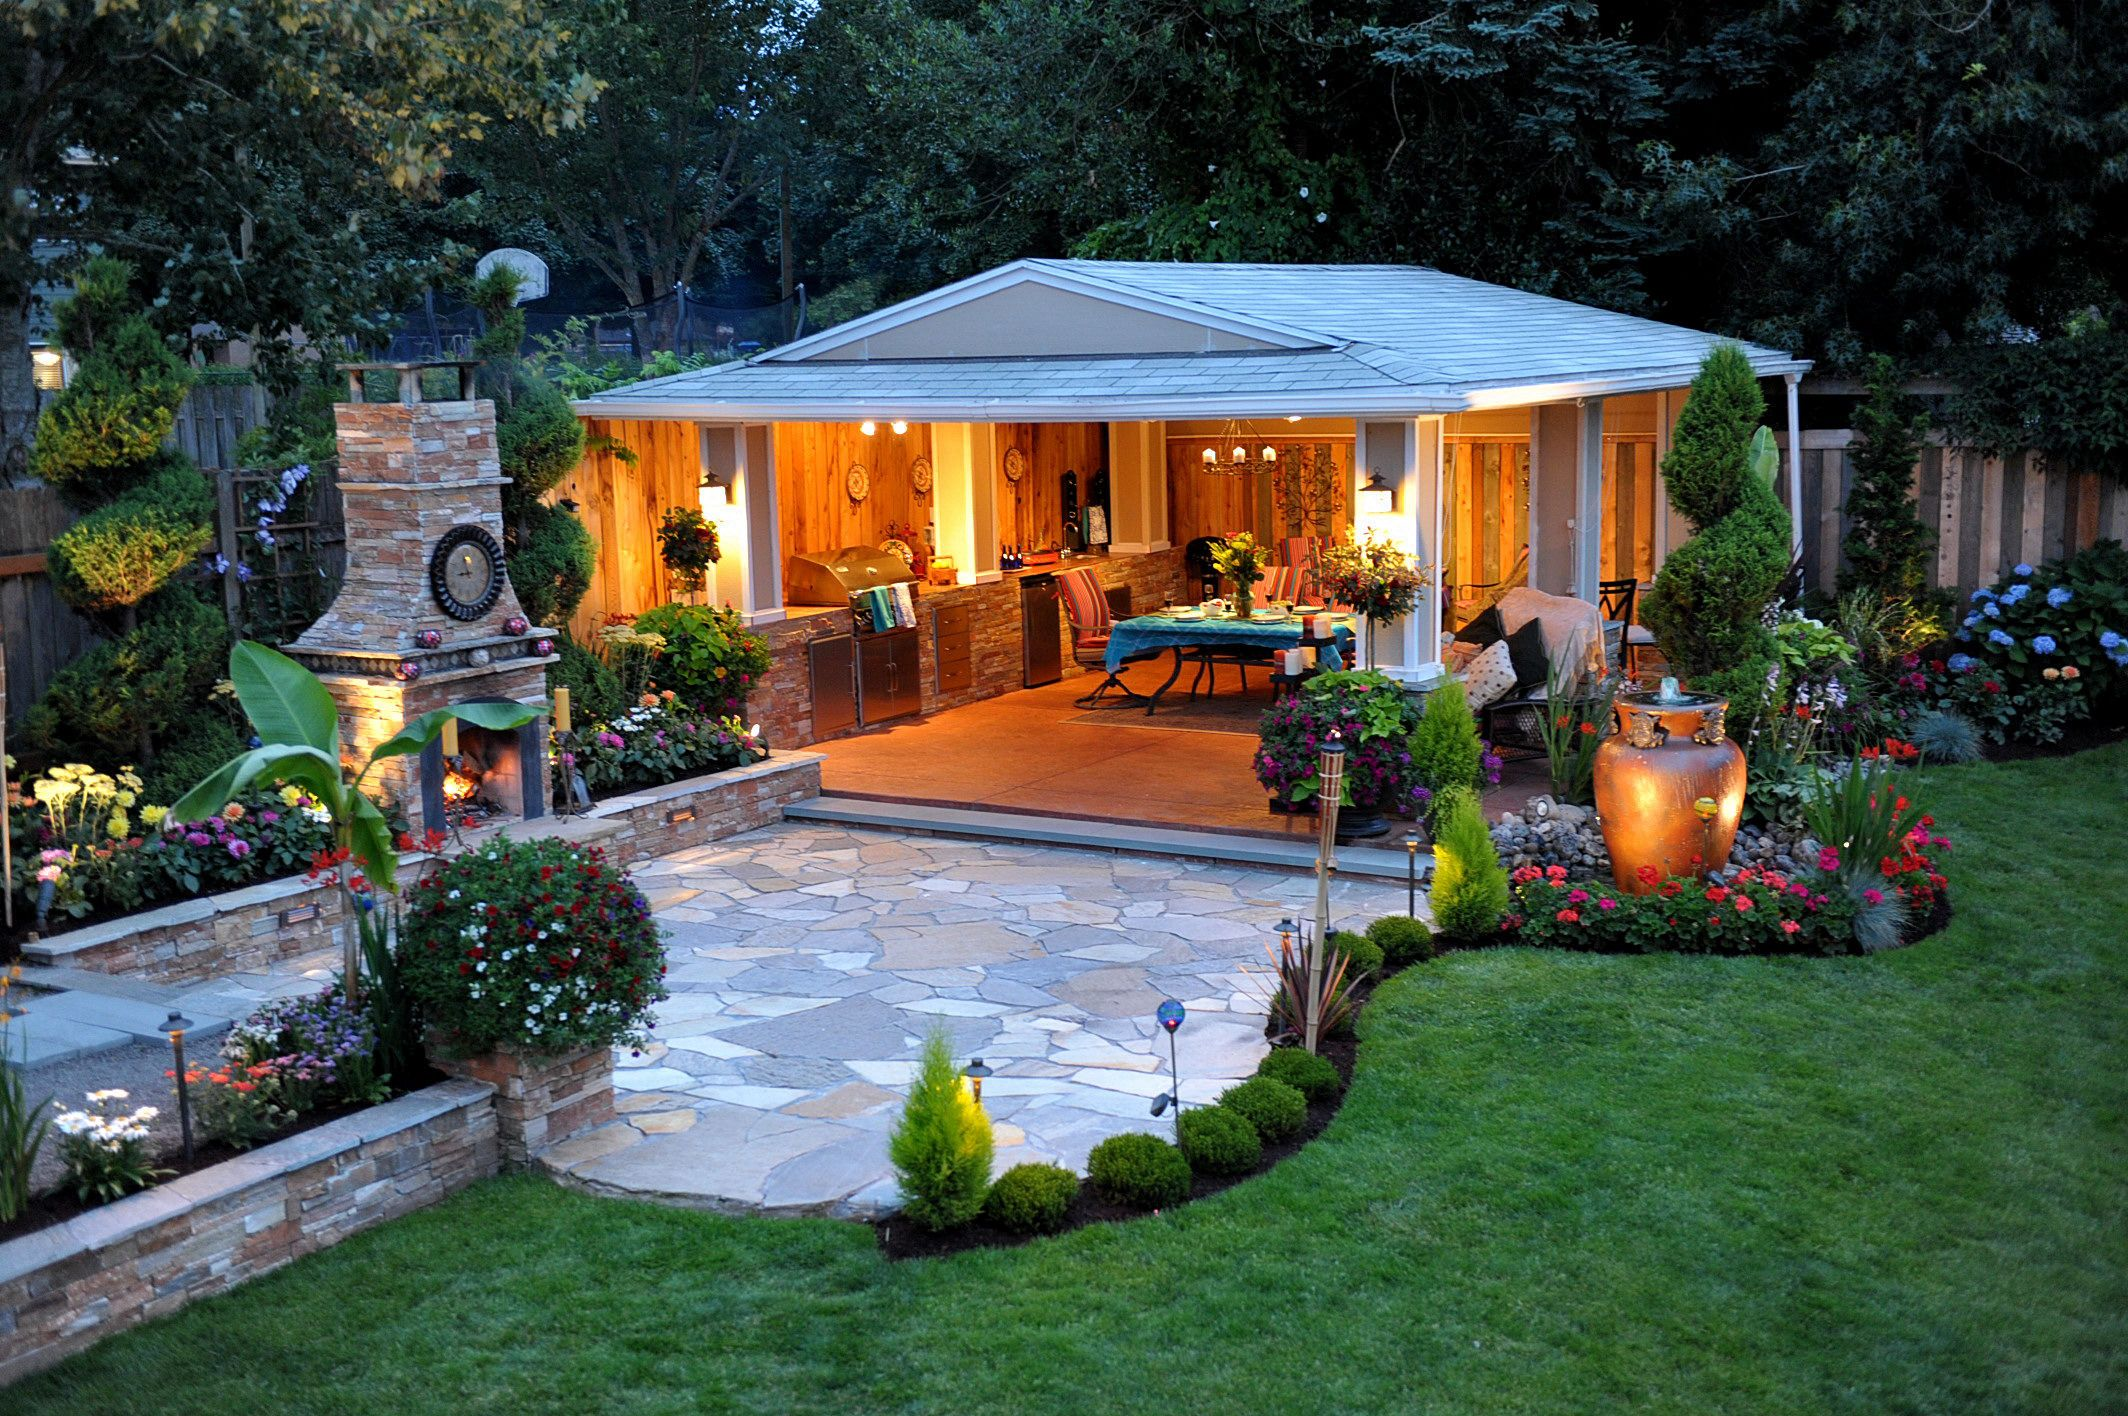 Extraordinary Backyard Oasis Ideas With Pool To Inspire Your Home